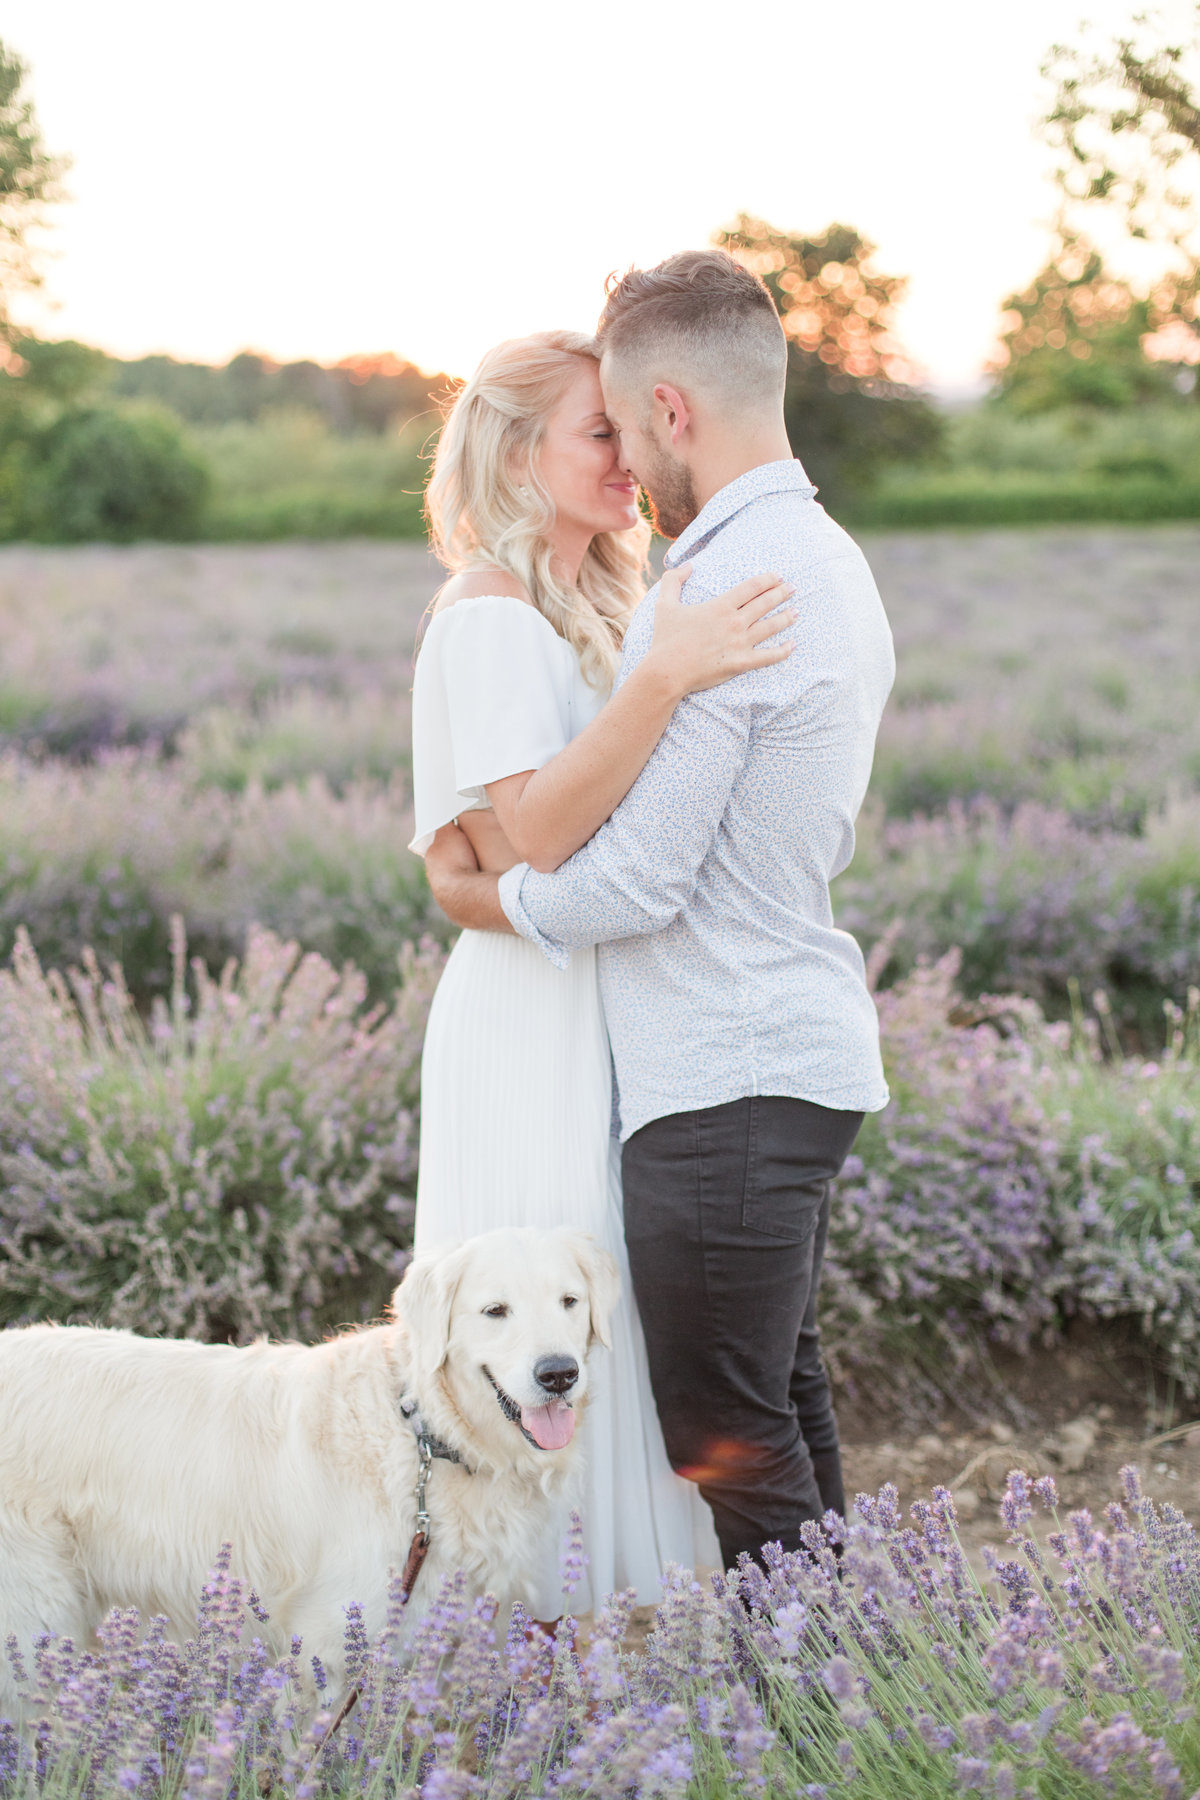 Ottawa-Wedding-Photographer-La-Maison-Lavande-Lavender-Field-Engagement-3